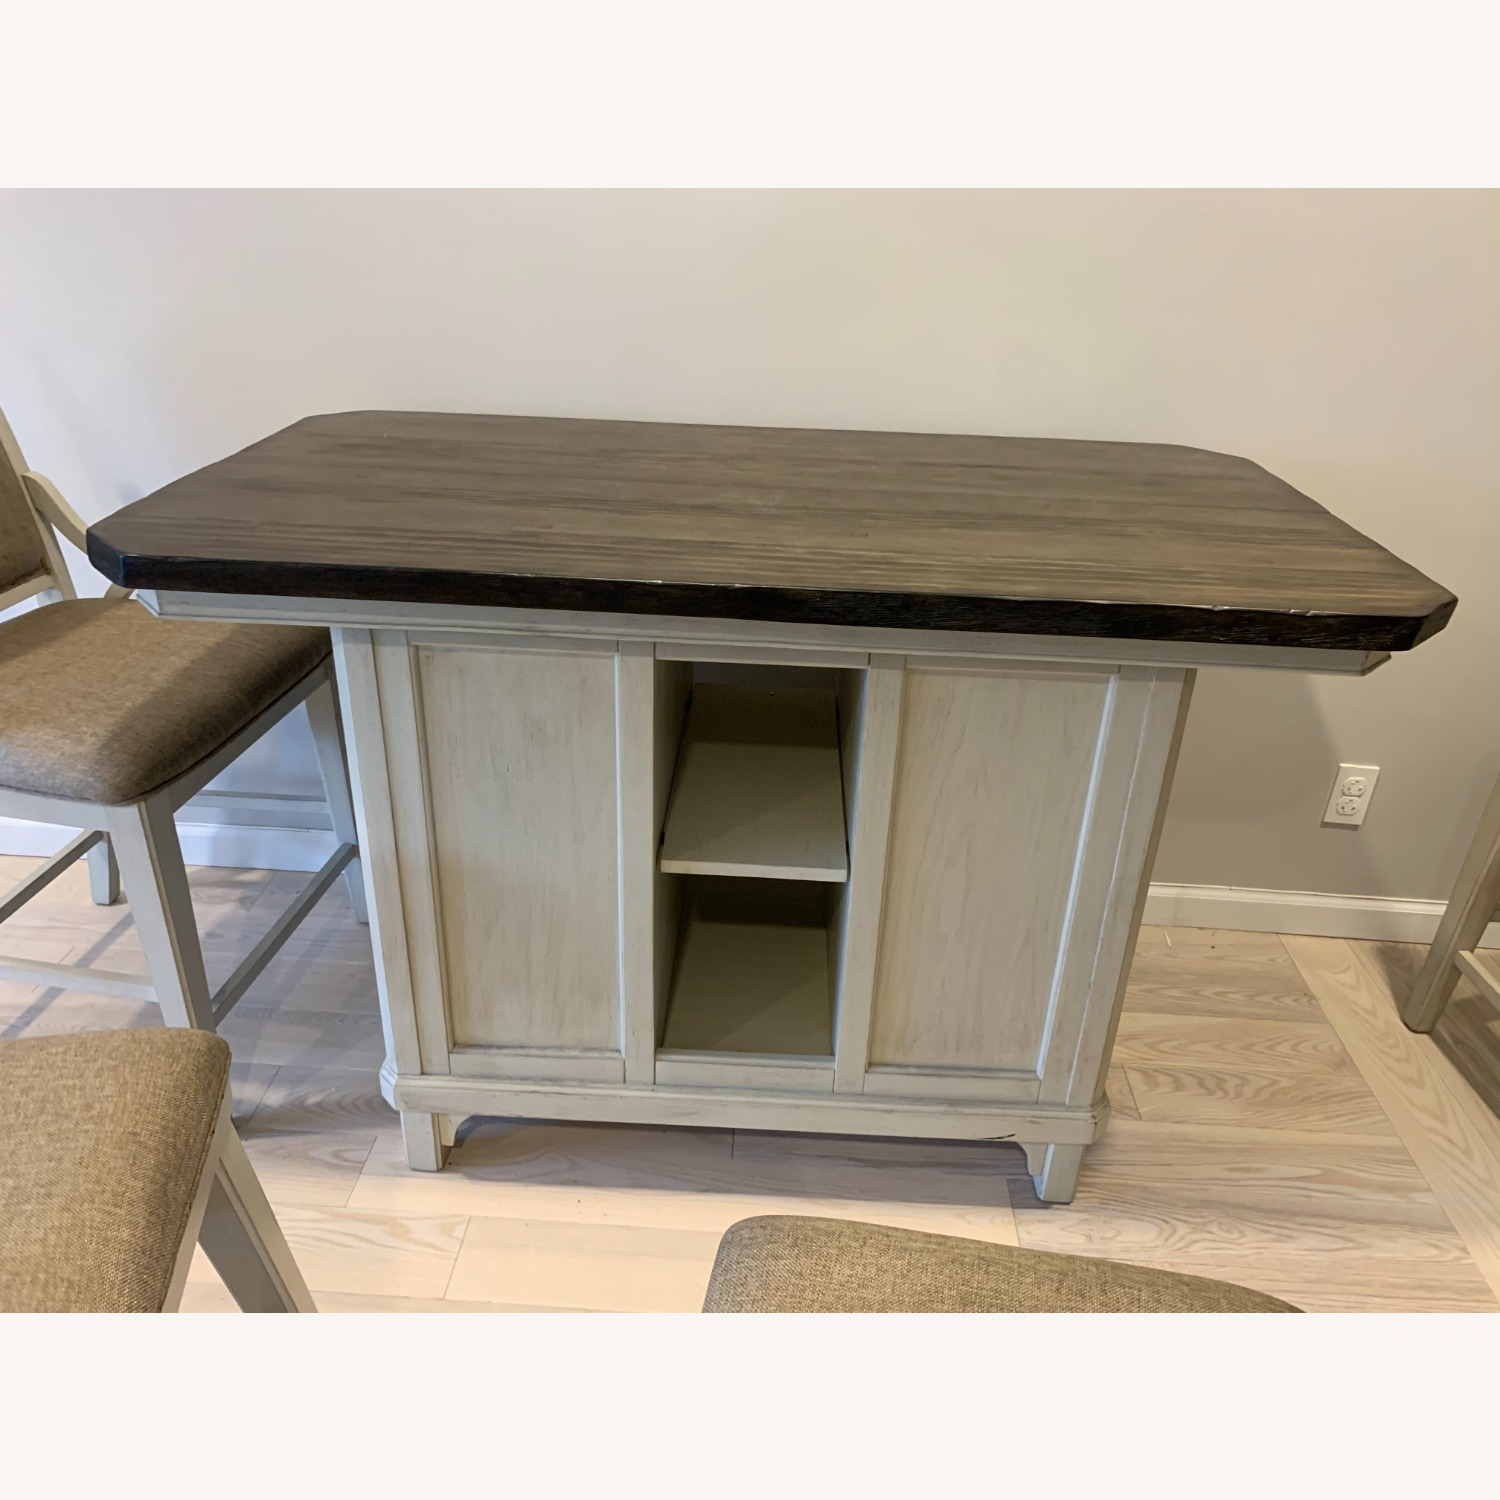 Peter Andrews Kitchen Island Table - image-1